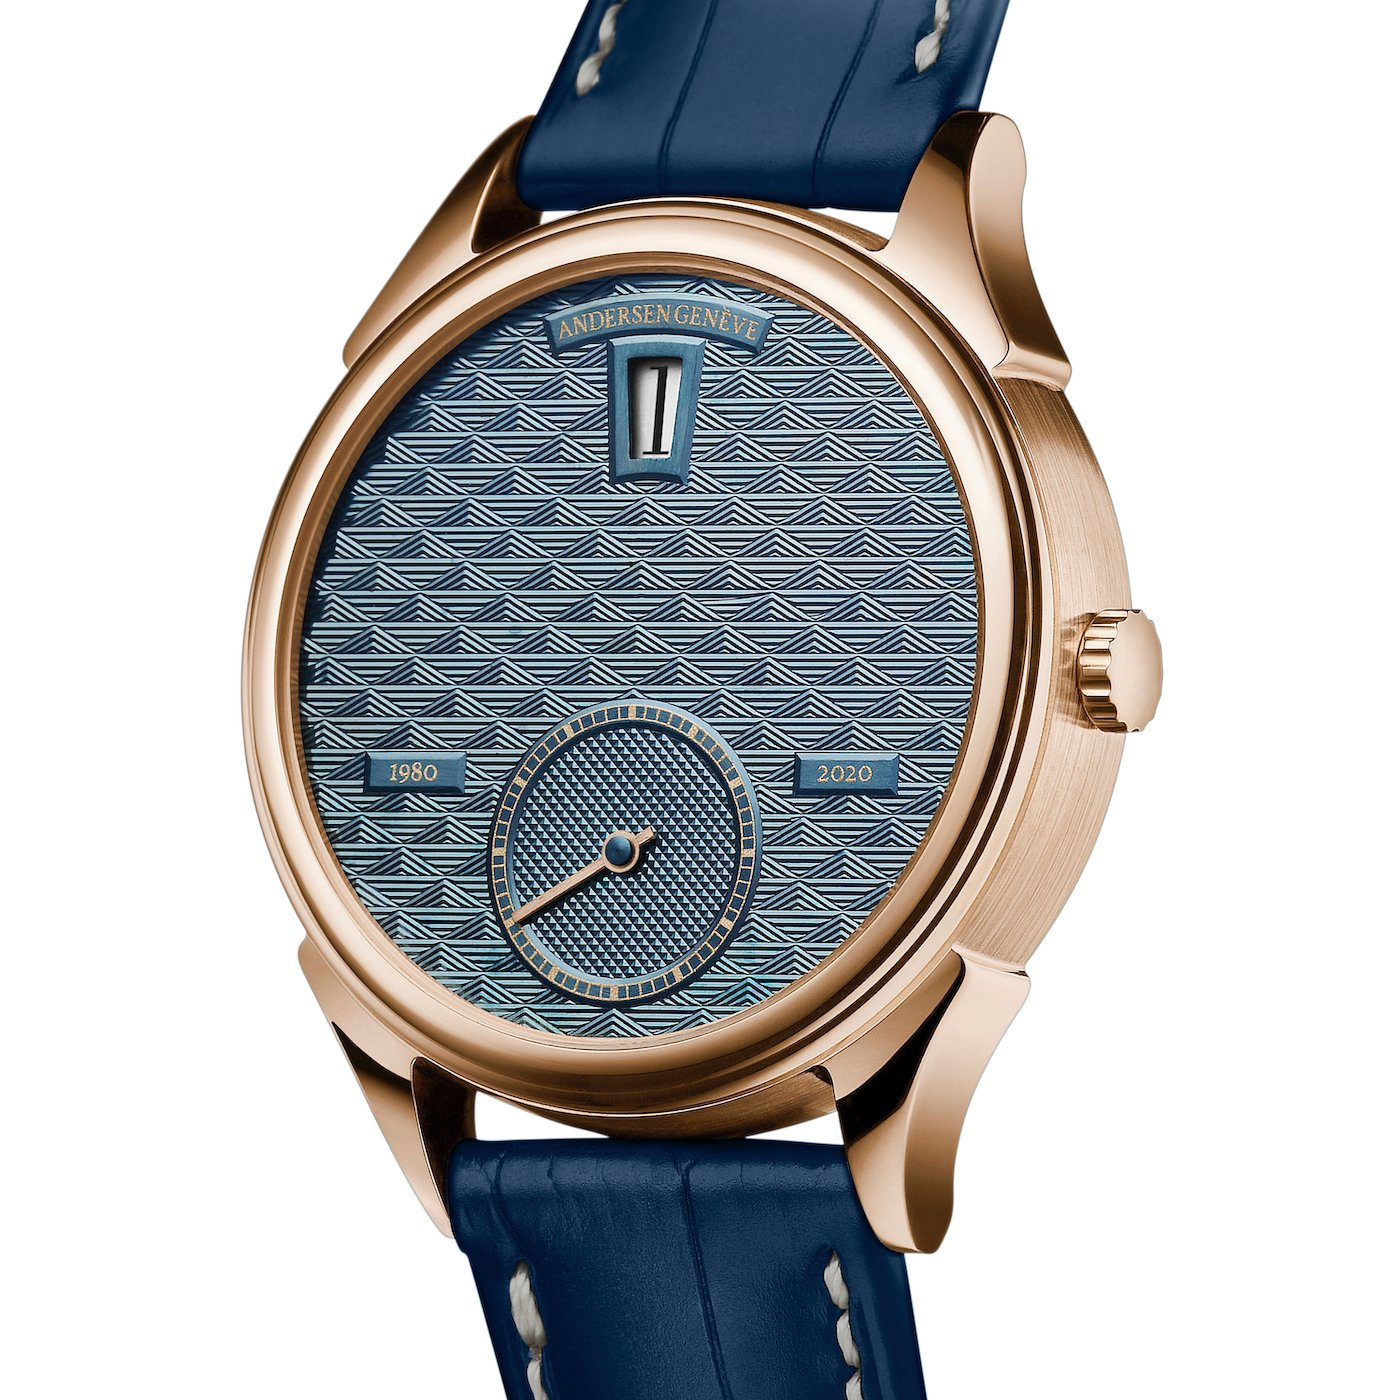 Andersen Genève: a model with jumping hours to celebrate the 40th anniversary of the independent brand